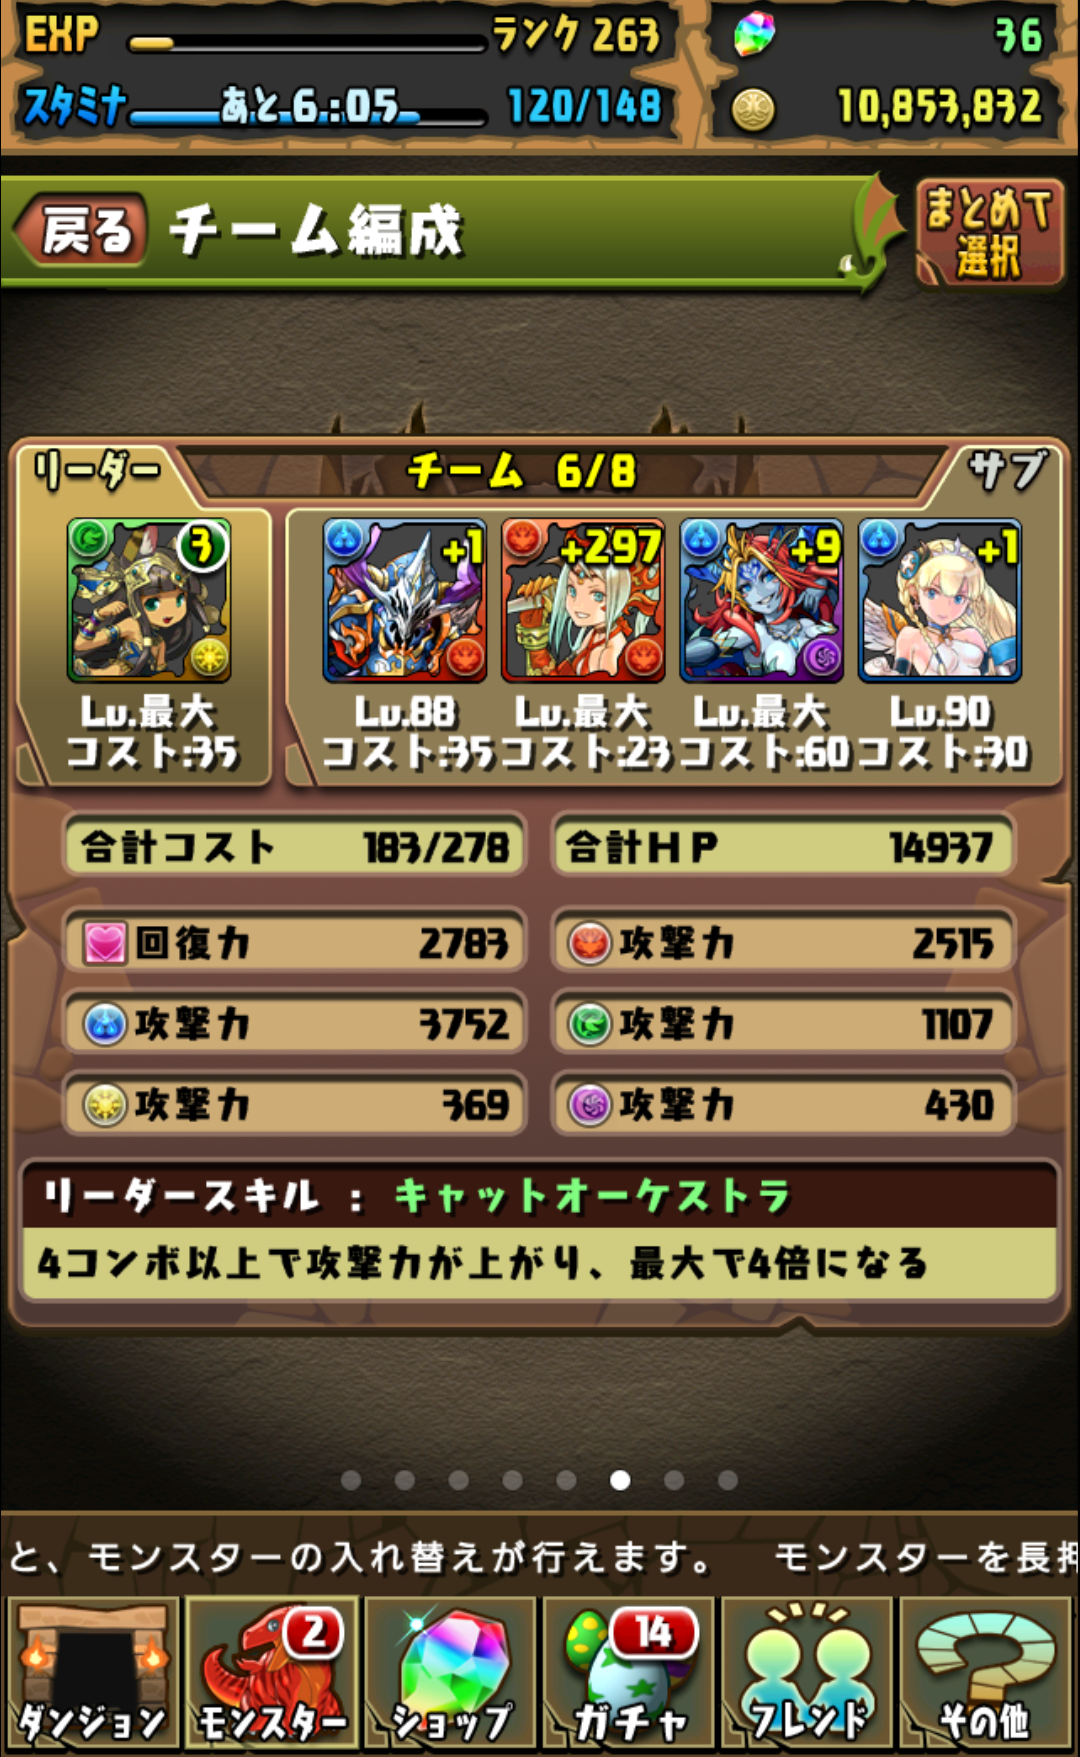 20140221115408556.png